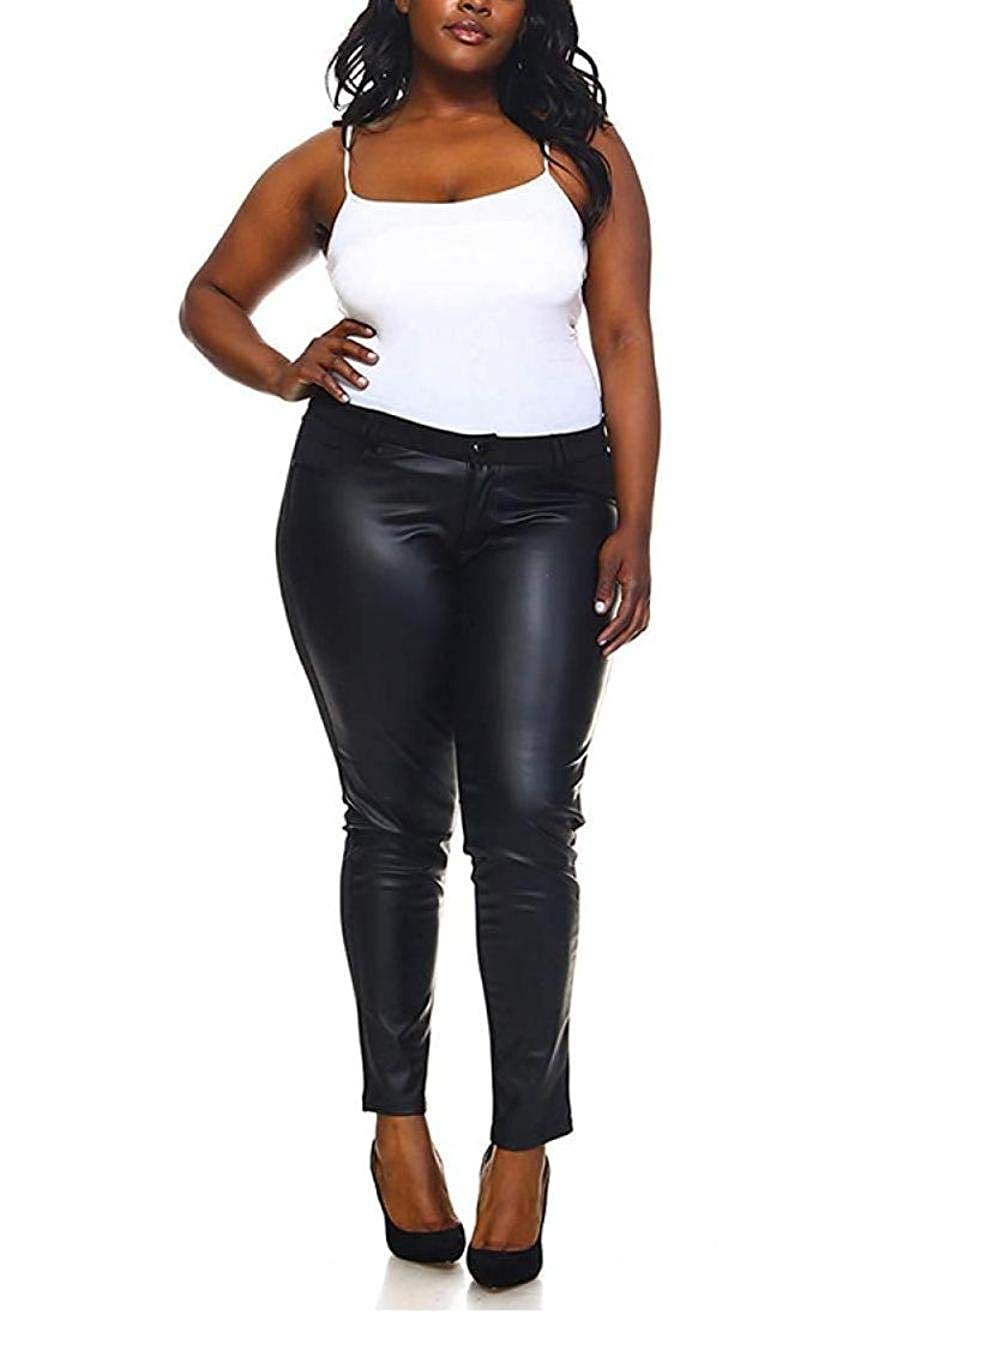 f13266f021e7 1826 Faux Leather Black Stretch Women's PLUS SIZE SKINNY Ponte/PU PANTS  Clubwear at Amazon Women's Clothing store: